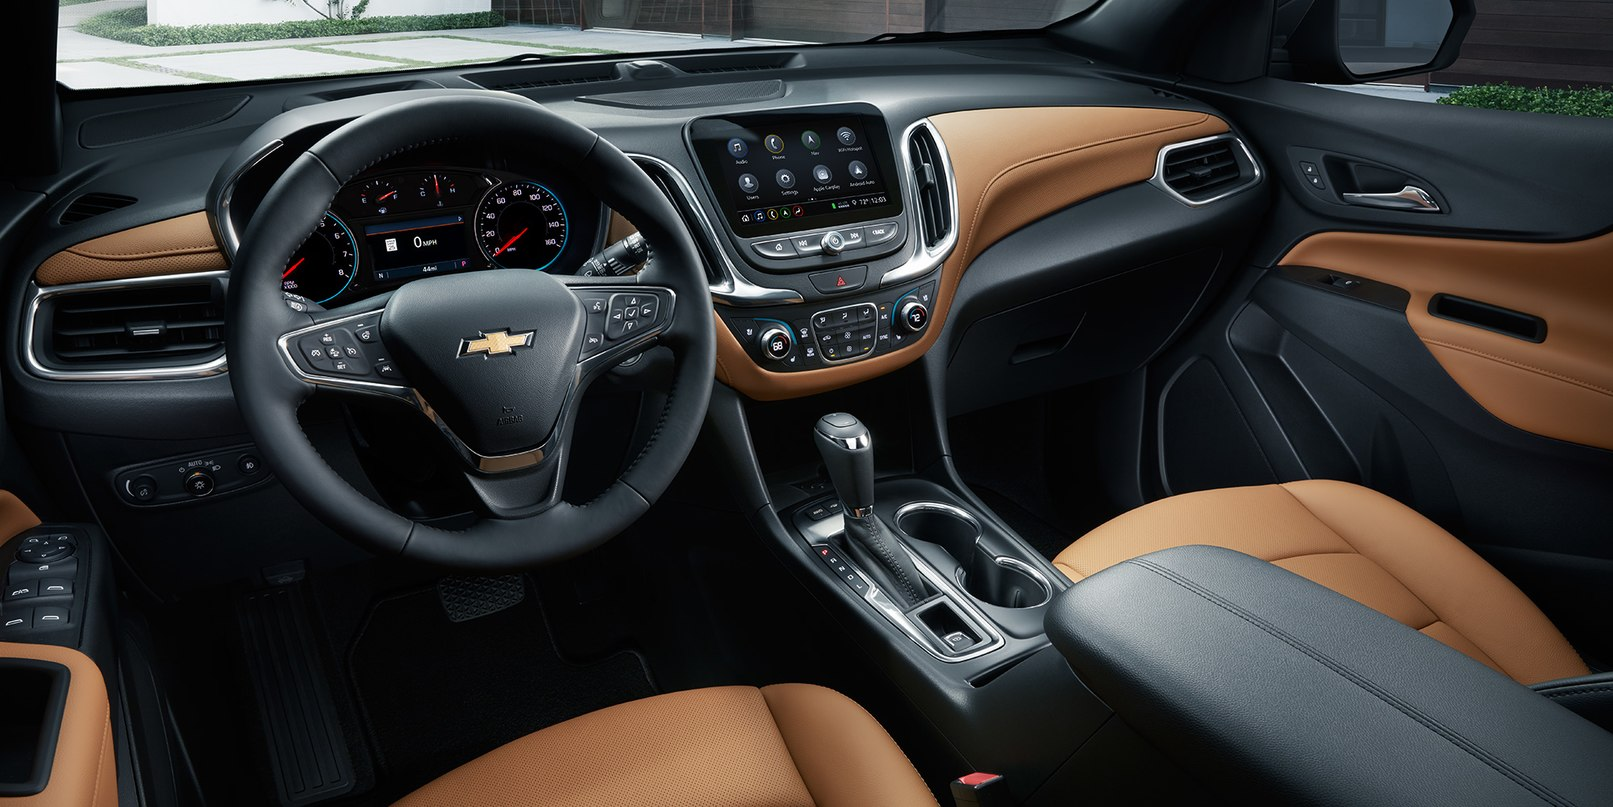 Cockpit of the Chevrolet Equinox